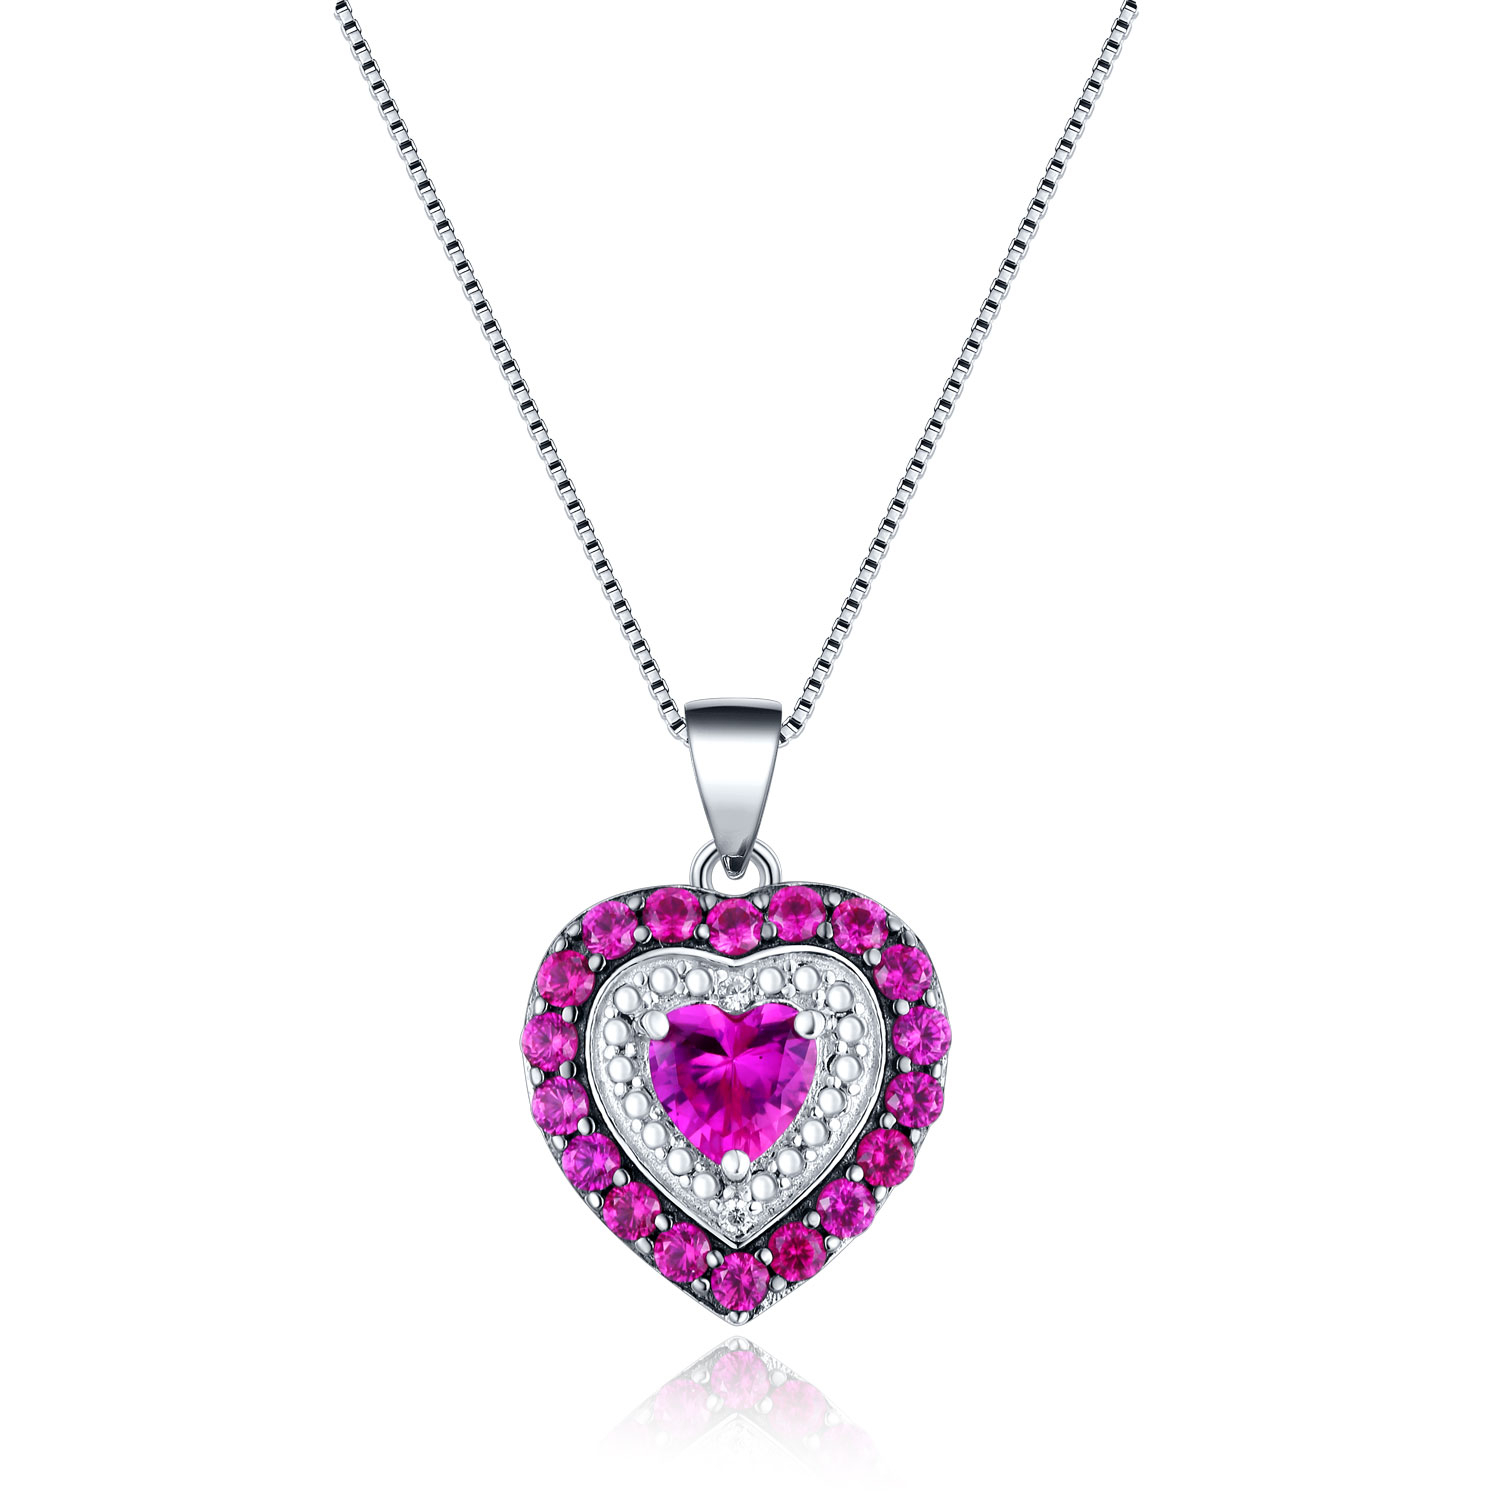 Mabella Sterling Silver Pave Simulated Ruby July Birthstone Heart Cut  Pendant Necklace Gift For Women Regarding Most Popular July Droplet Pendant, Synthetic Ruby Necklaces (Gallery 22 of 25)